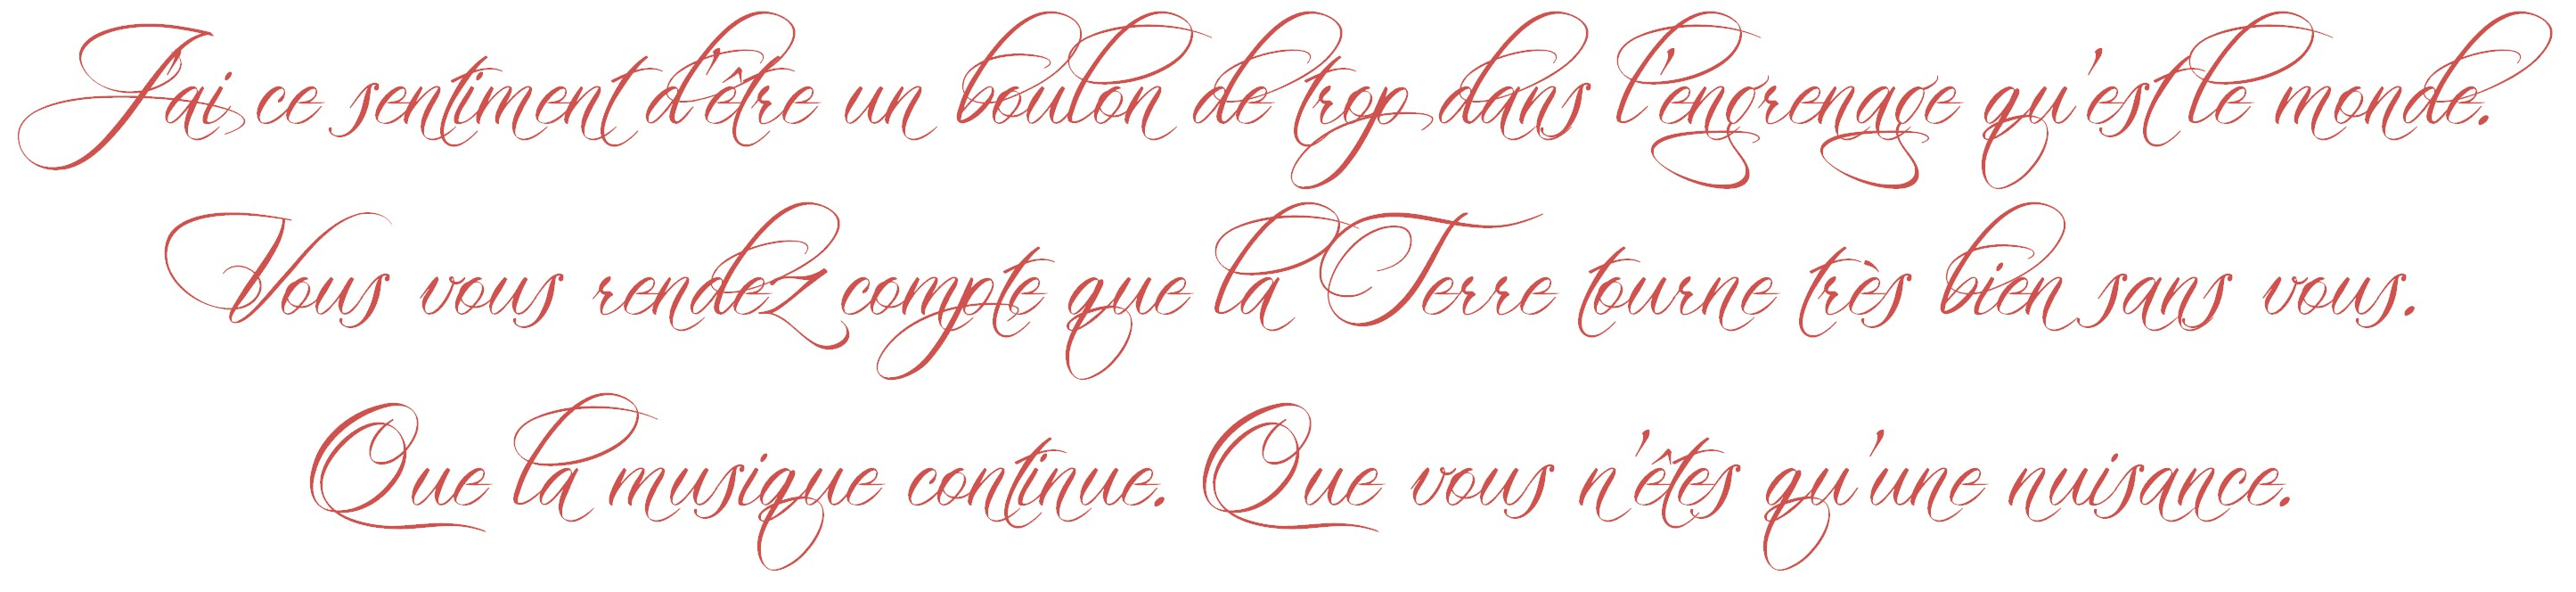 le voleur de coeur citation quote 3